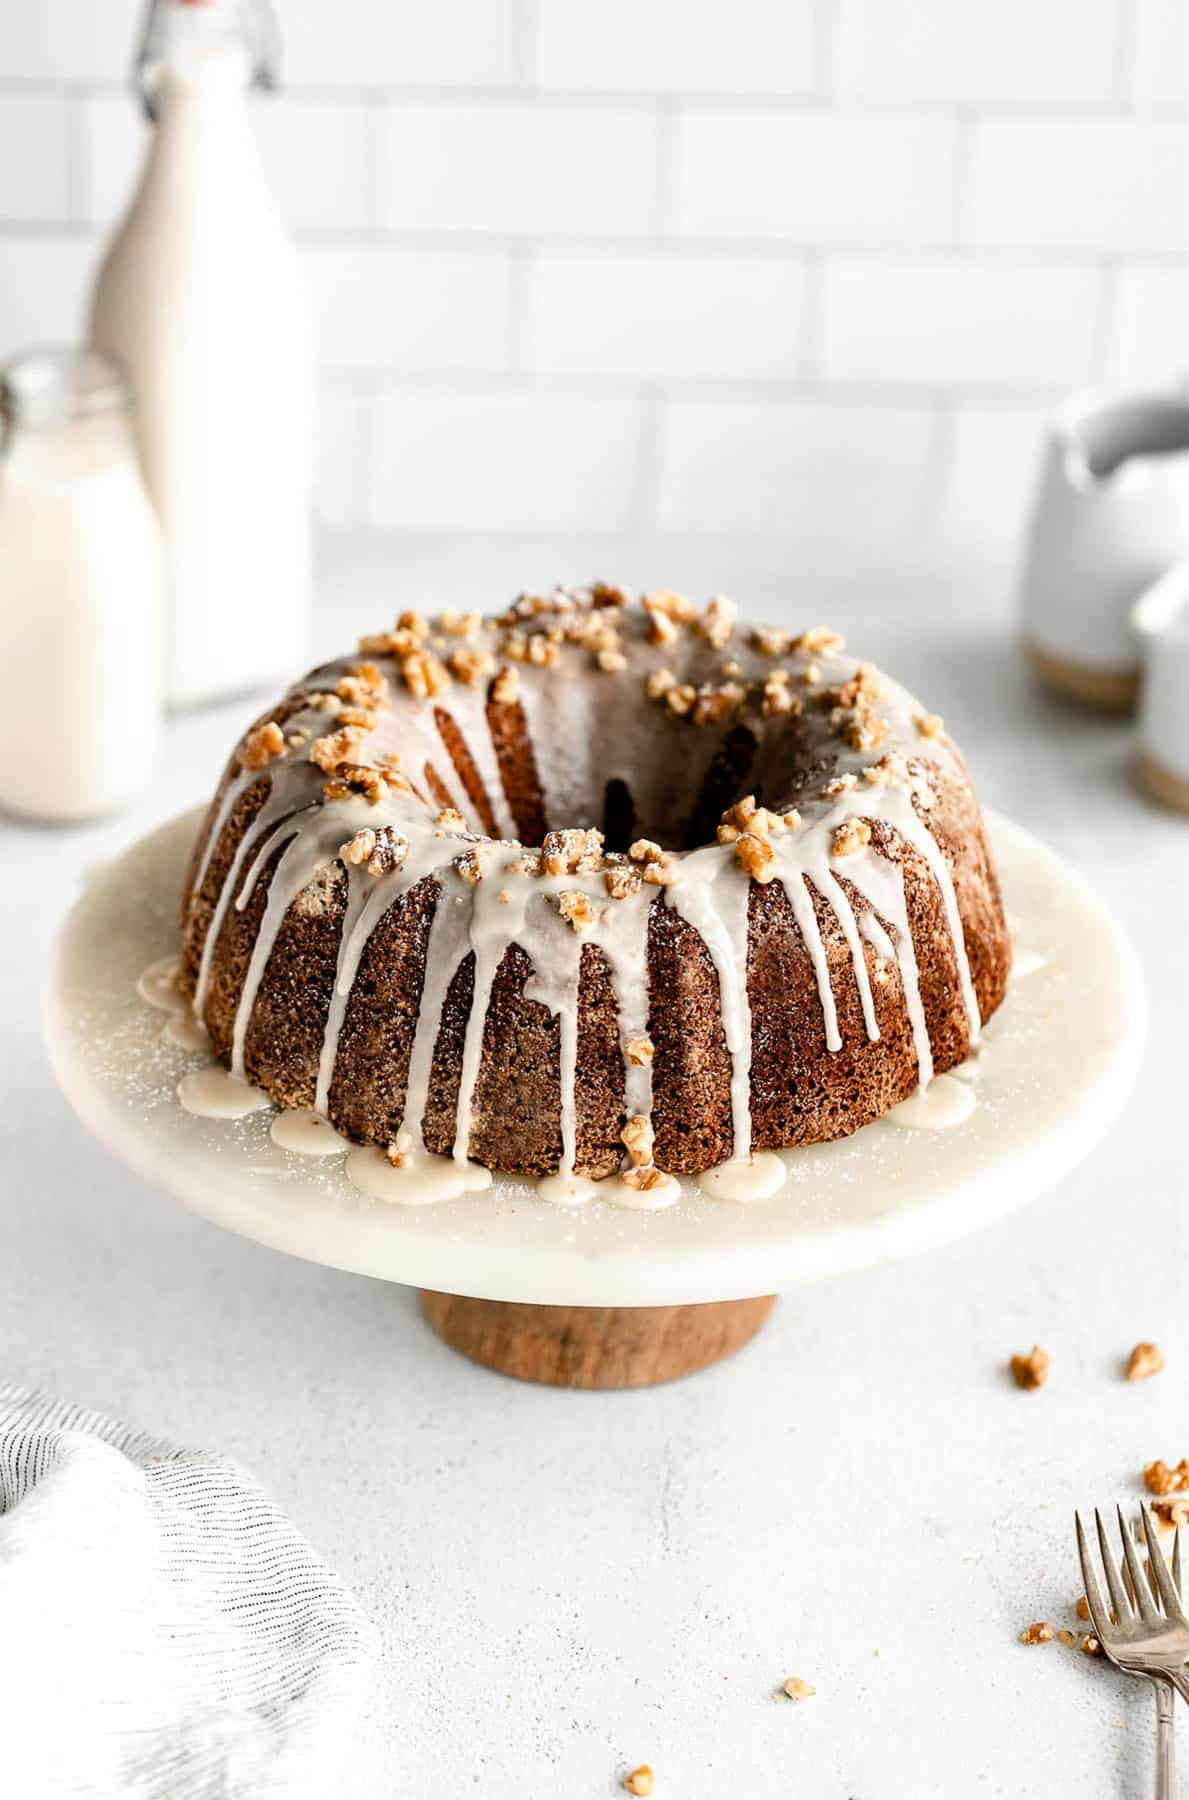 gluten free apple bundt cake on a cake stand with maple icing